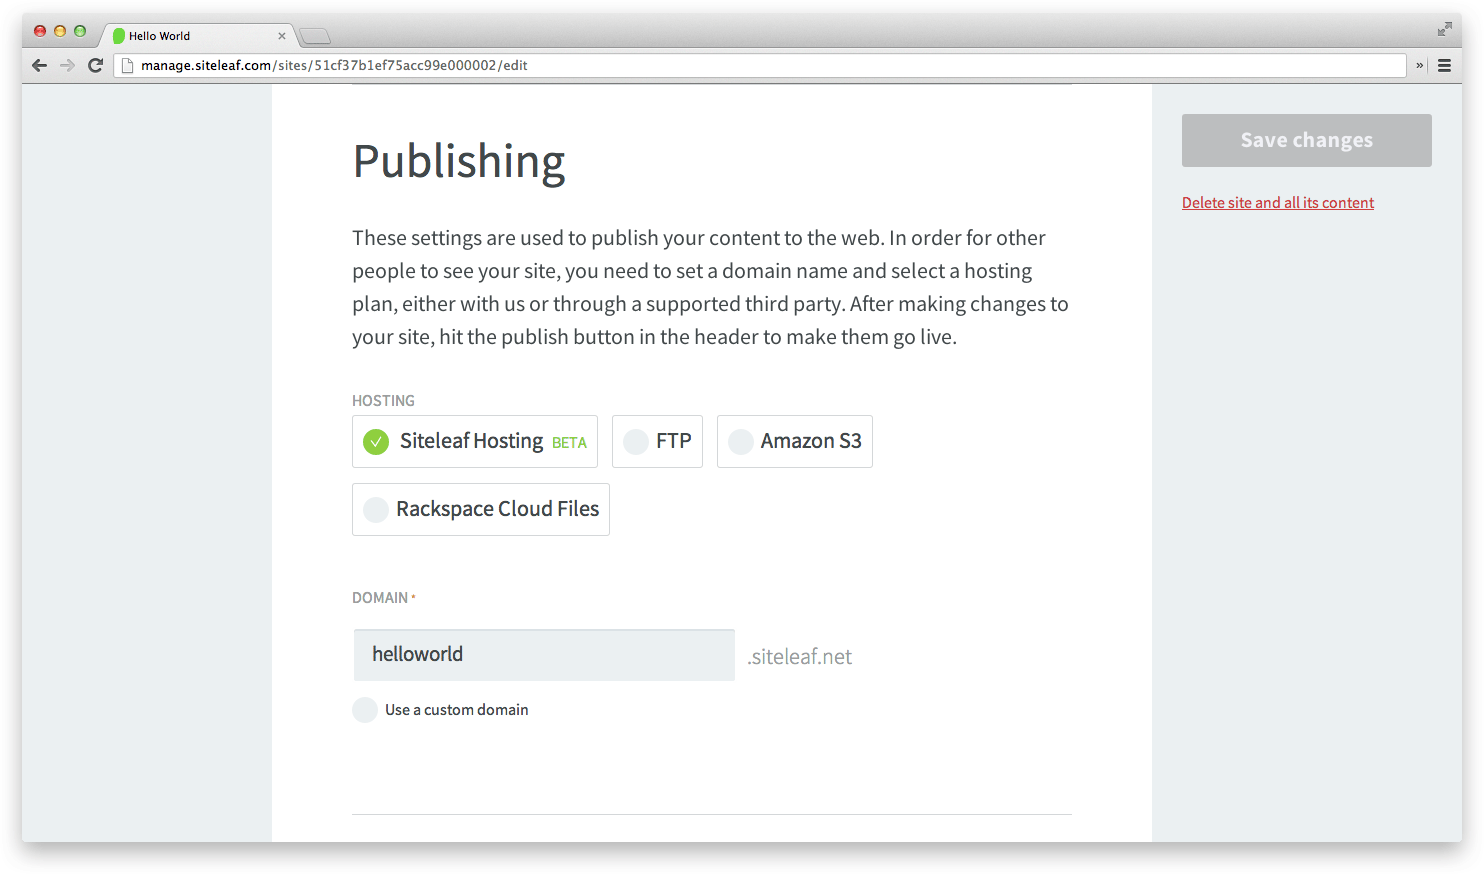 publishing-settings